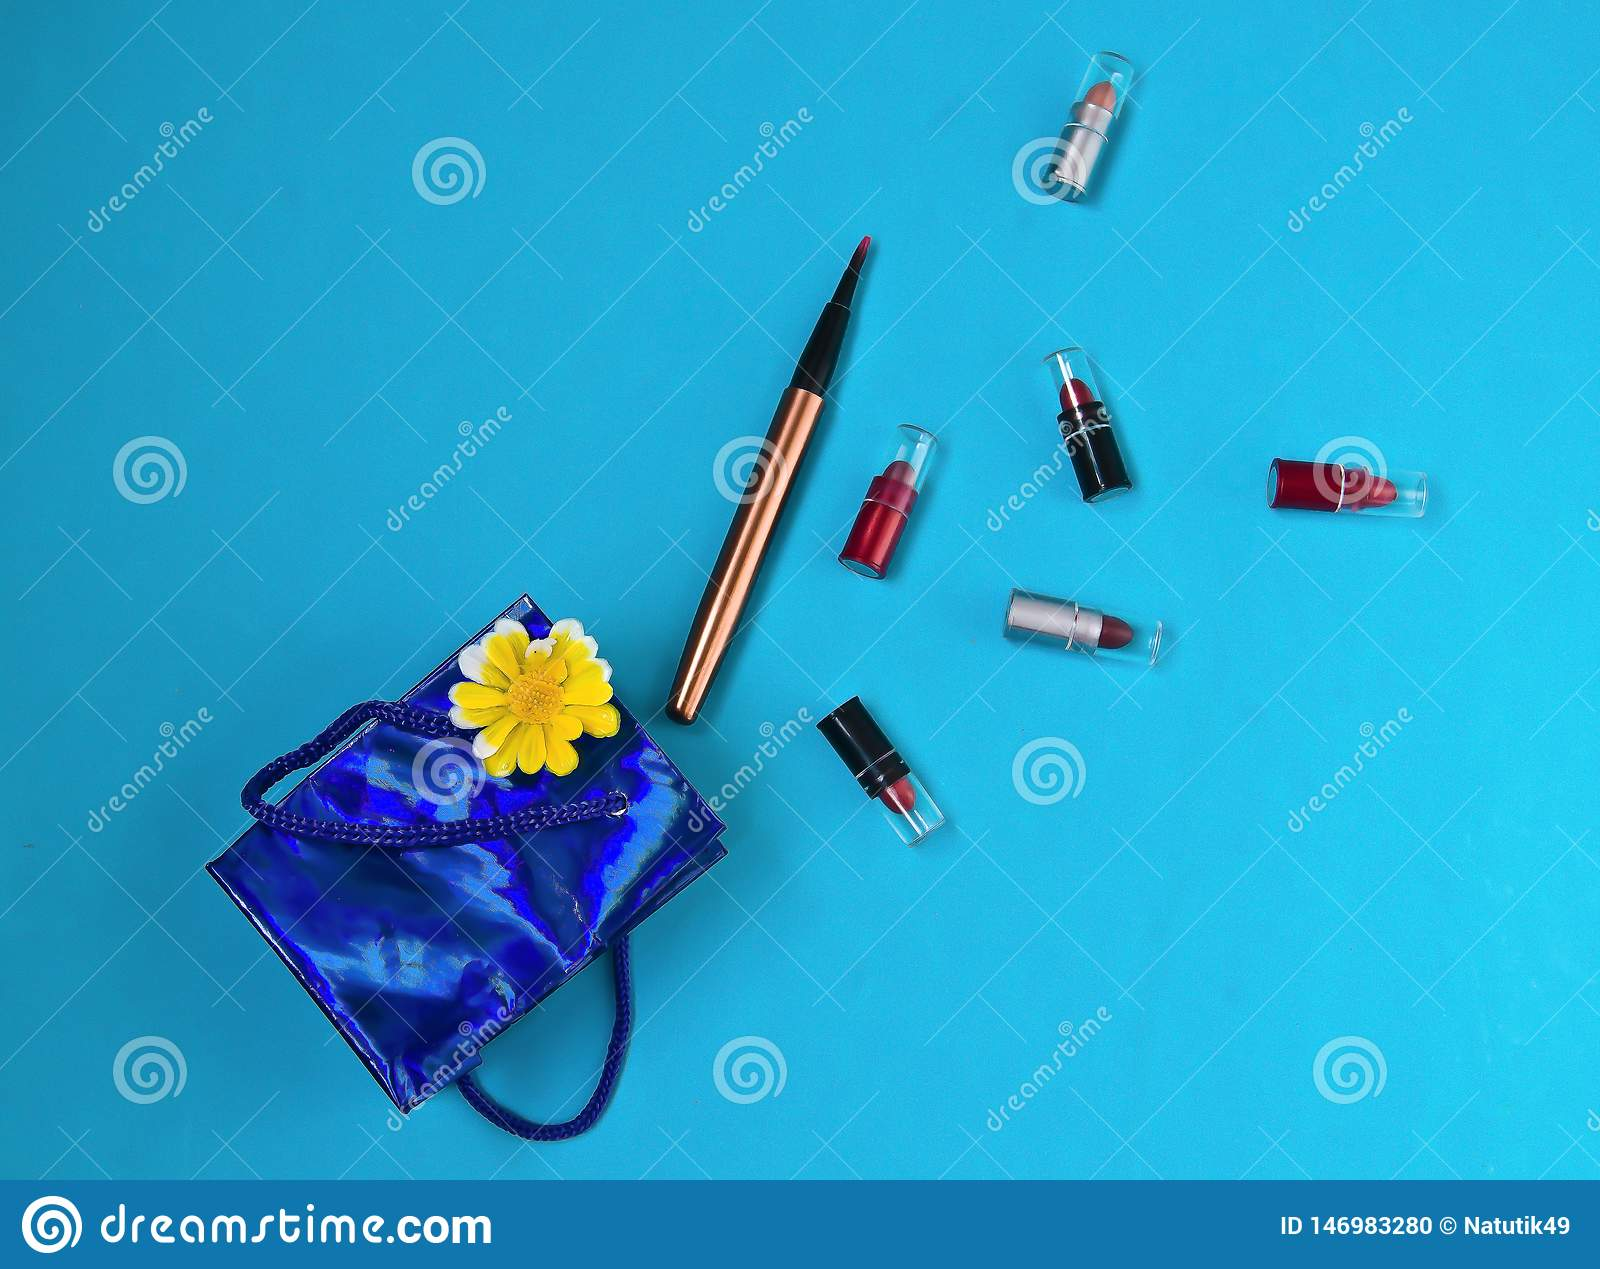 Lipstick, brush, package, gift, surprise,on blue background